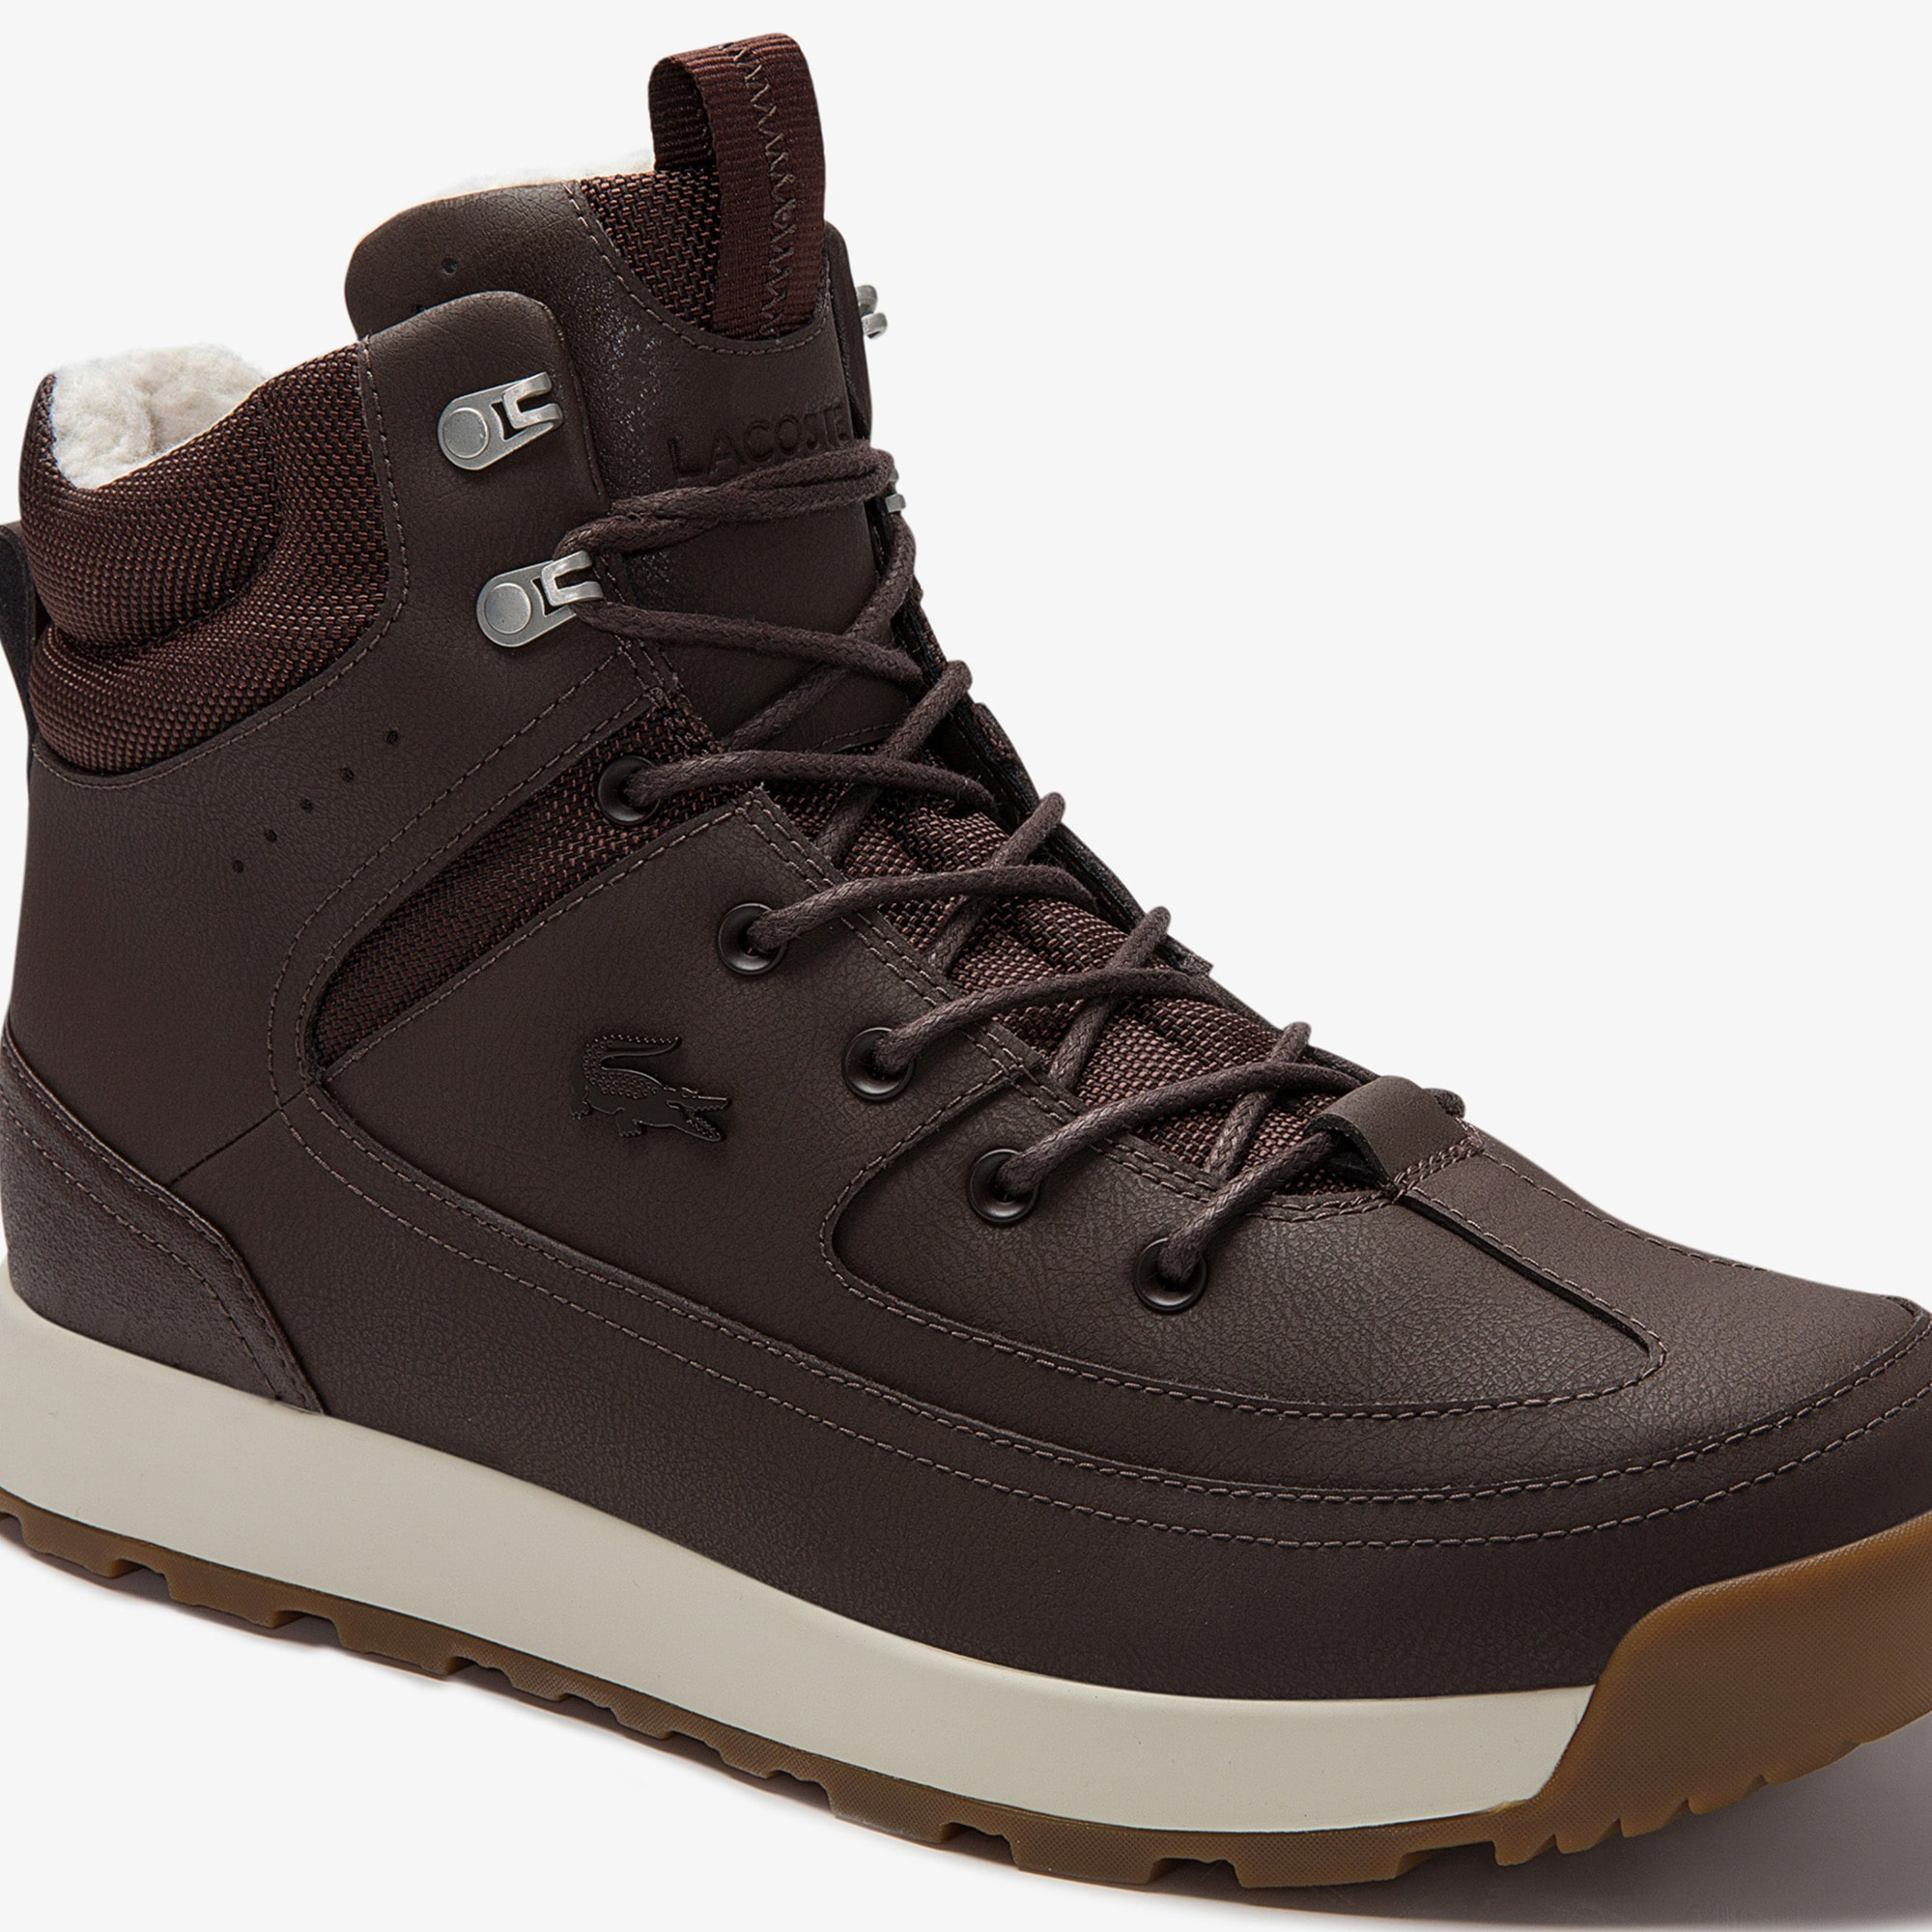 Men's Urban Breaker Leather and Textile Hiking Boots